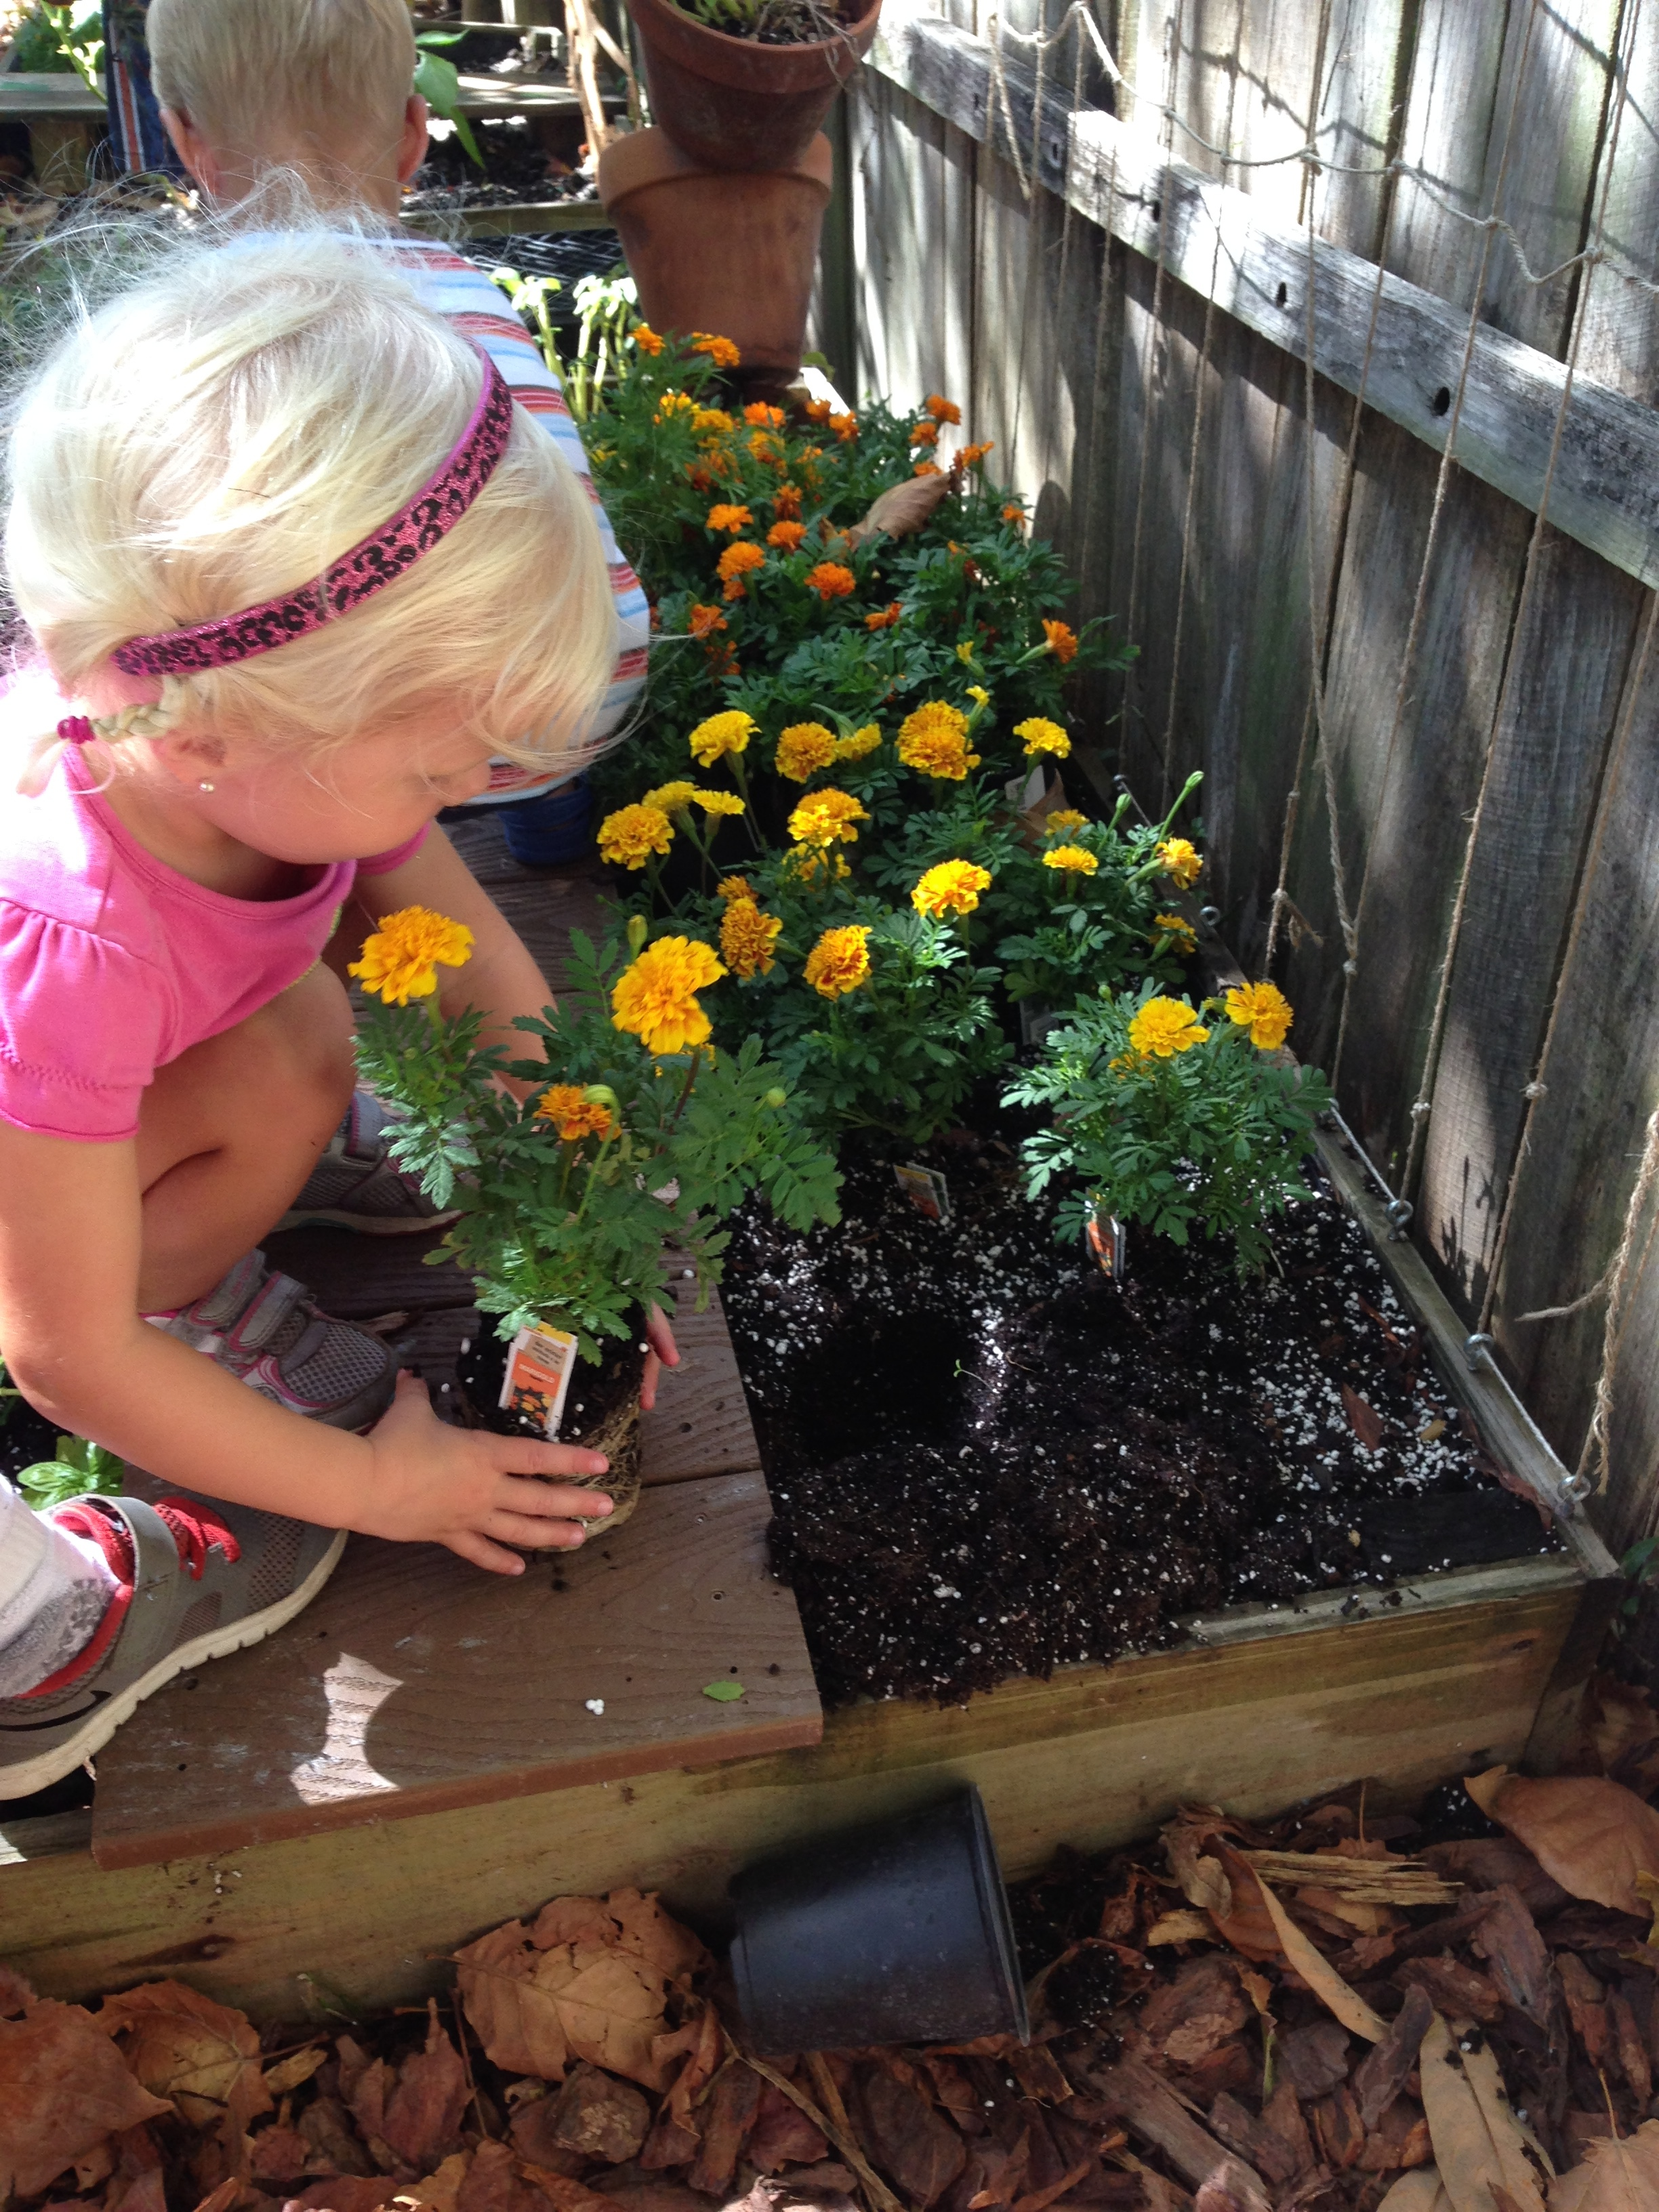 Picking marigolds to make cape dye